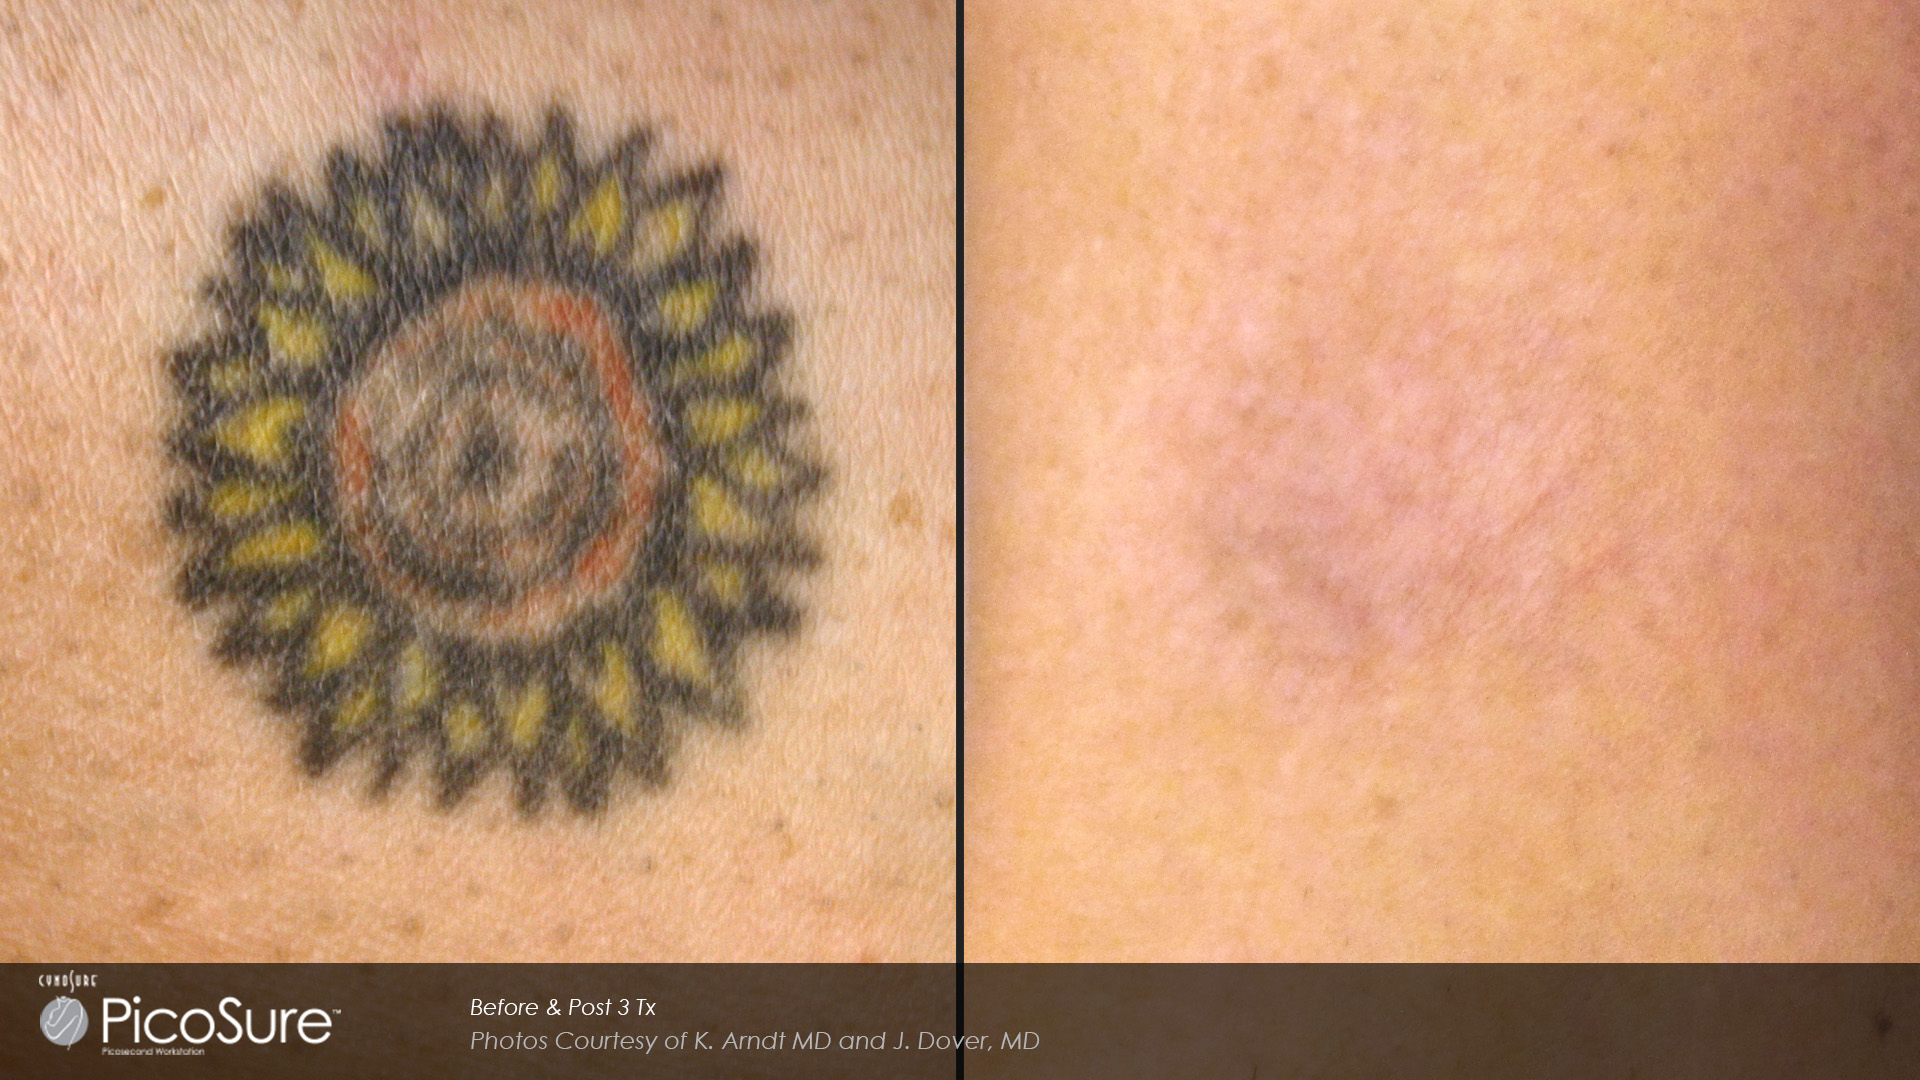 PicoSure-Before-and-After-01 - Aesthetica